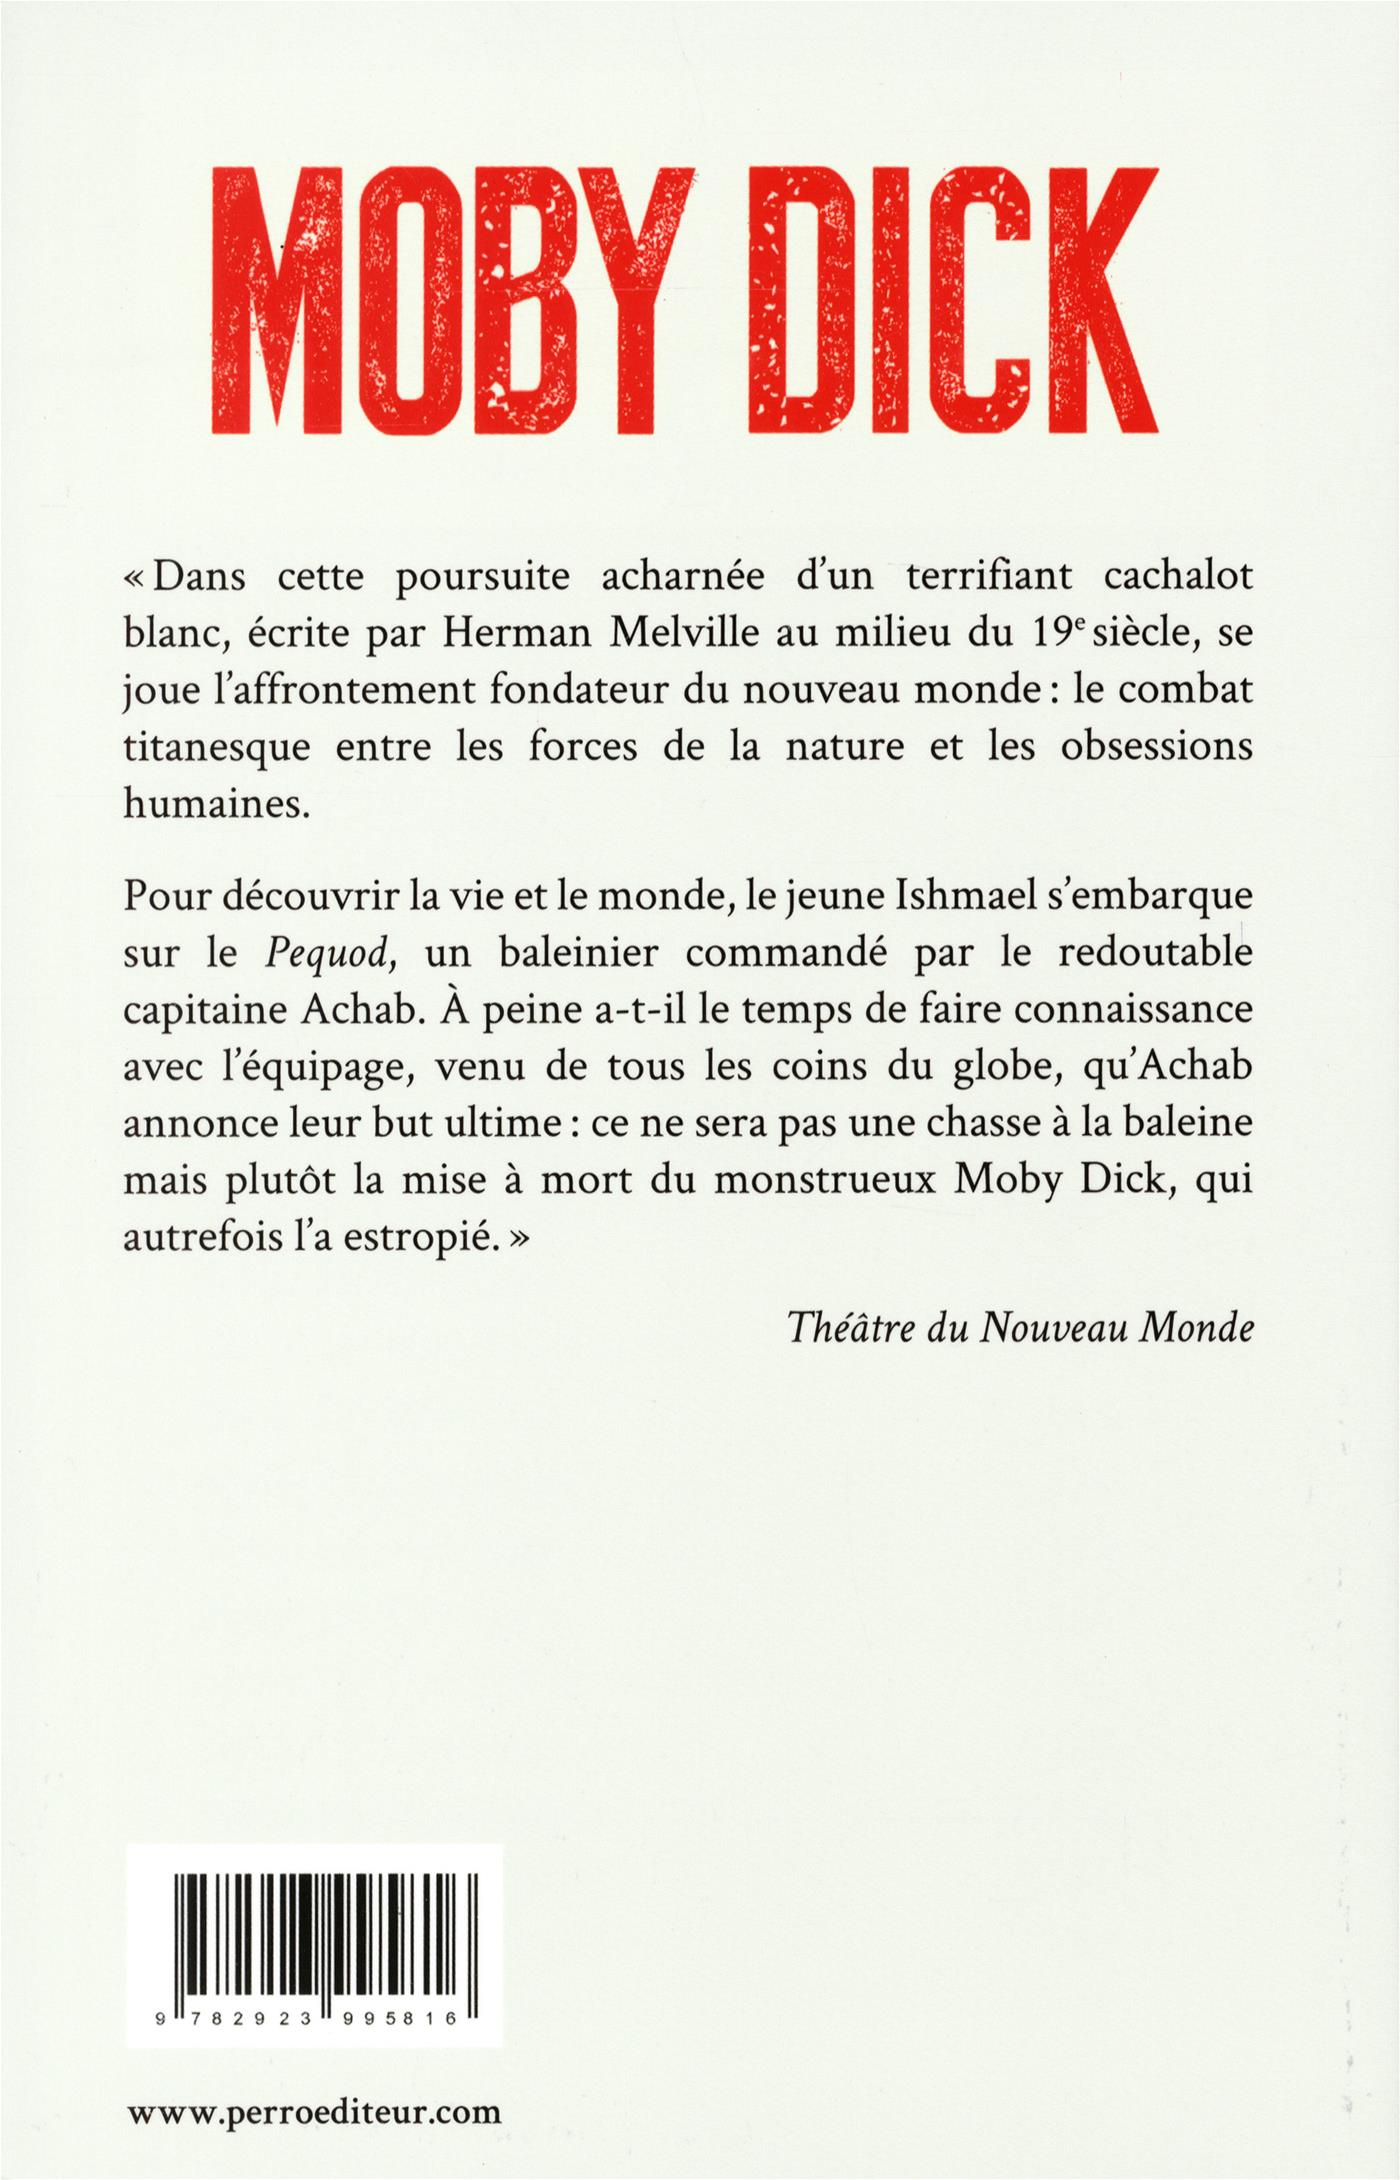 Moby dick livre couvre